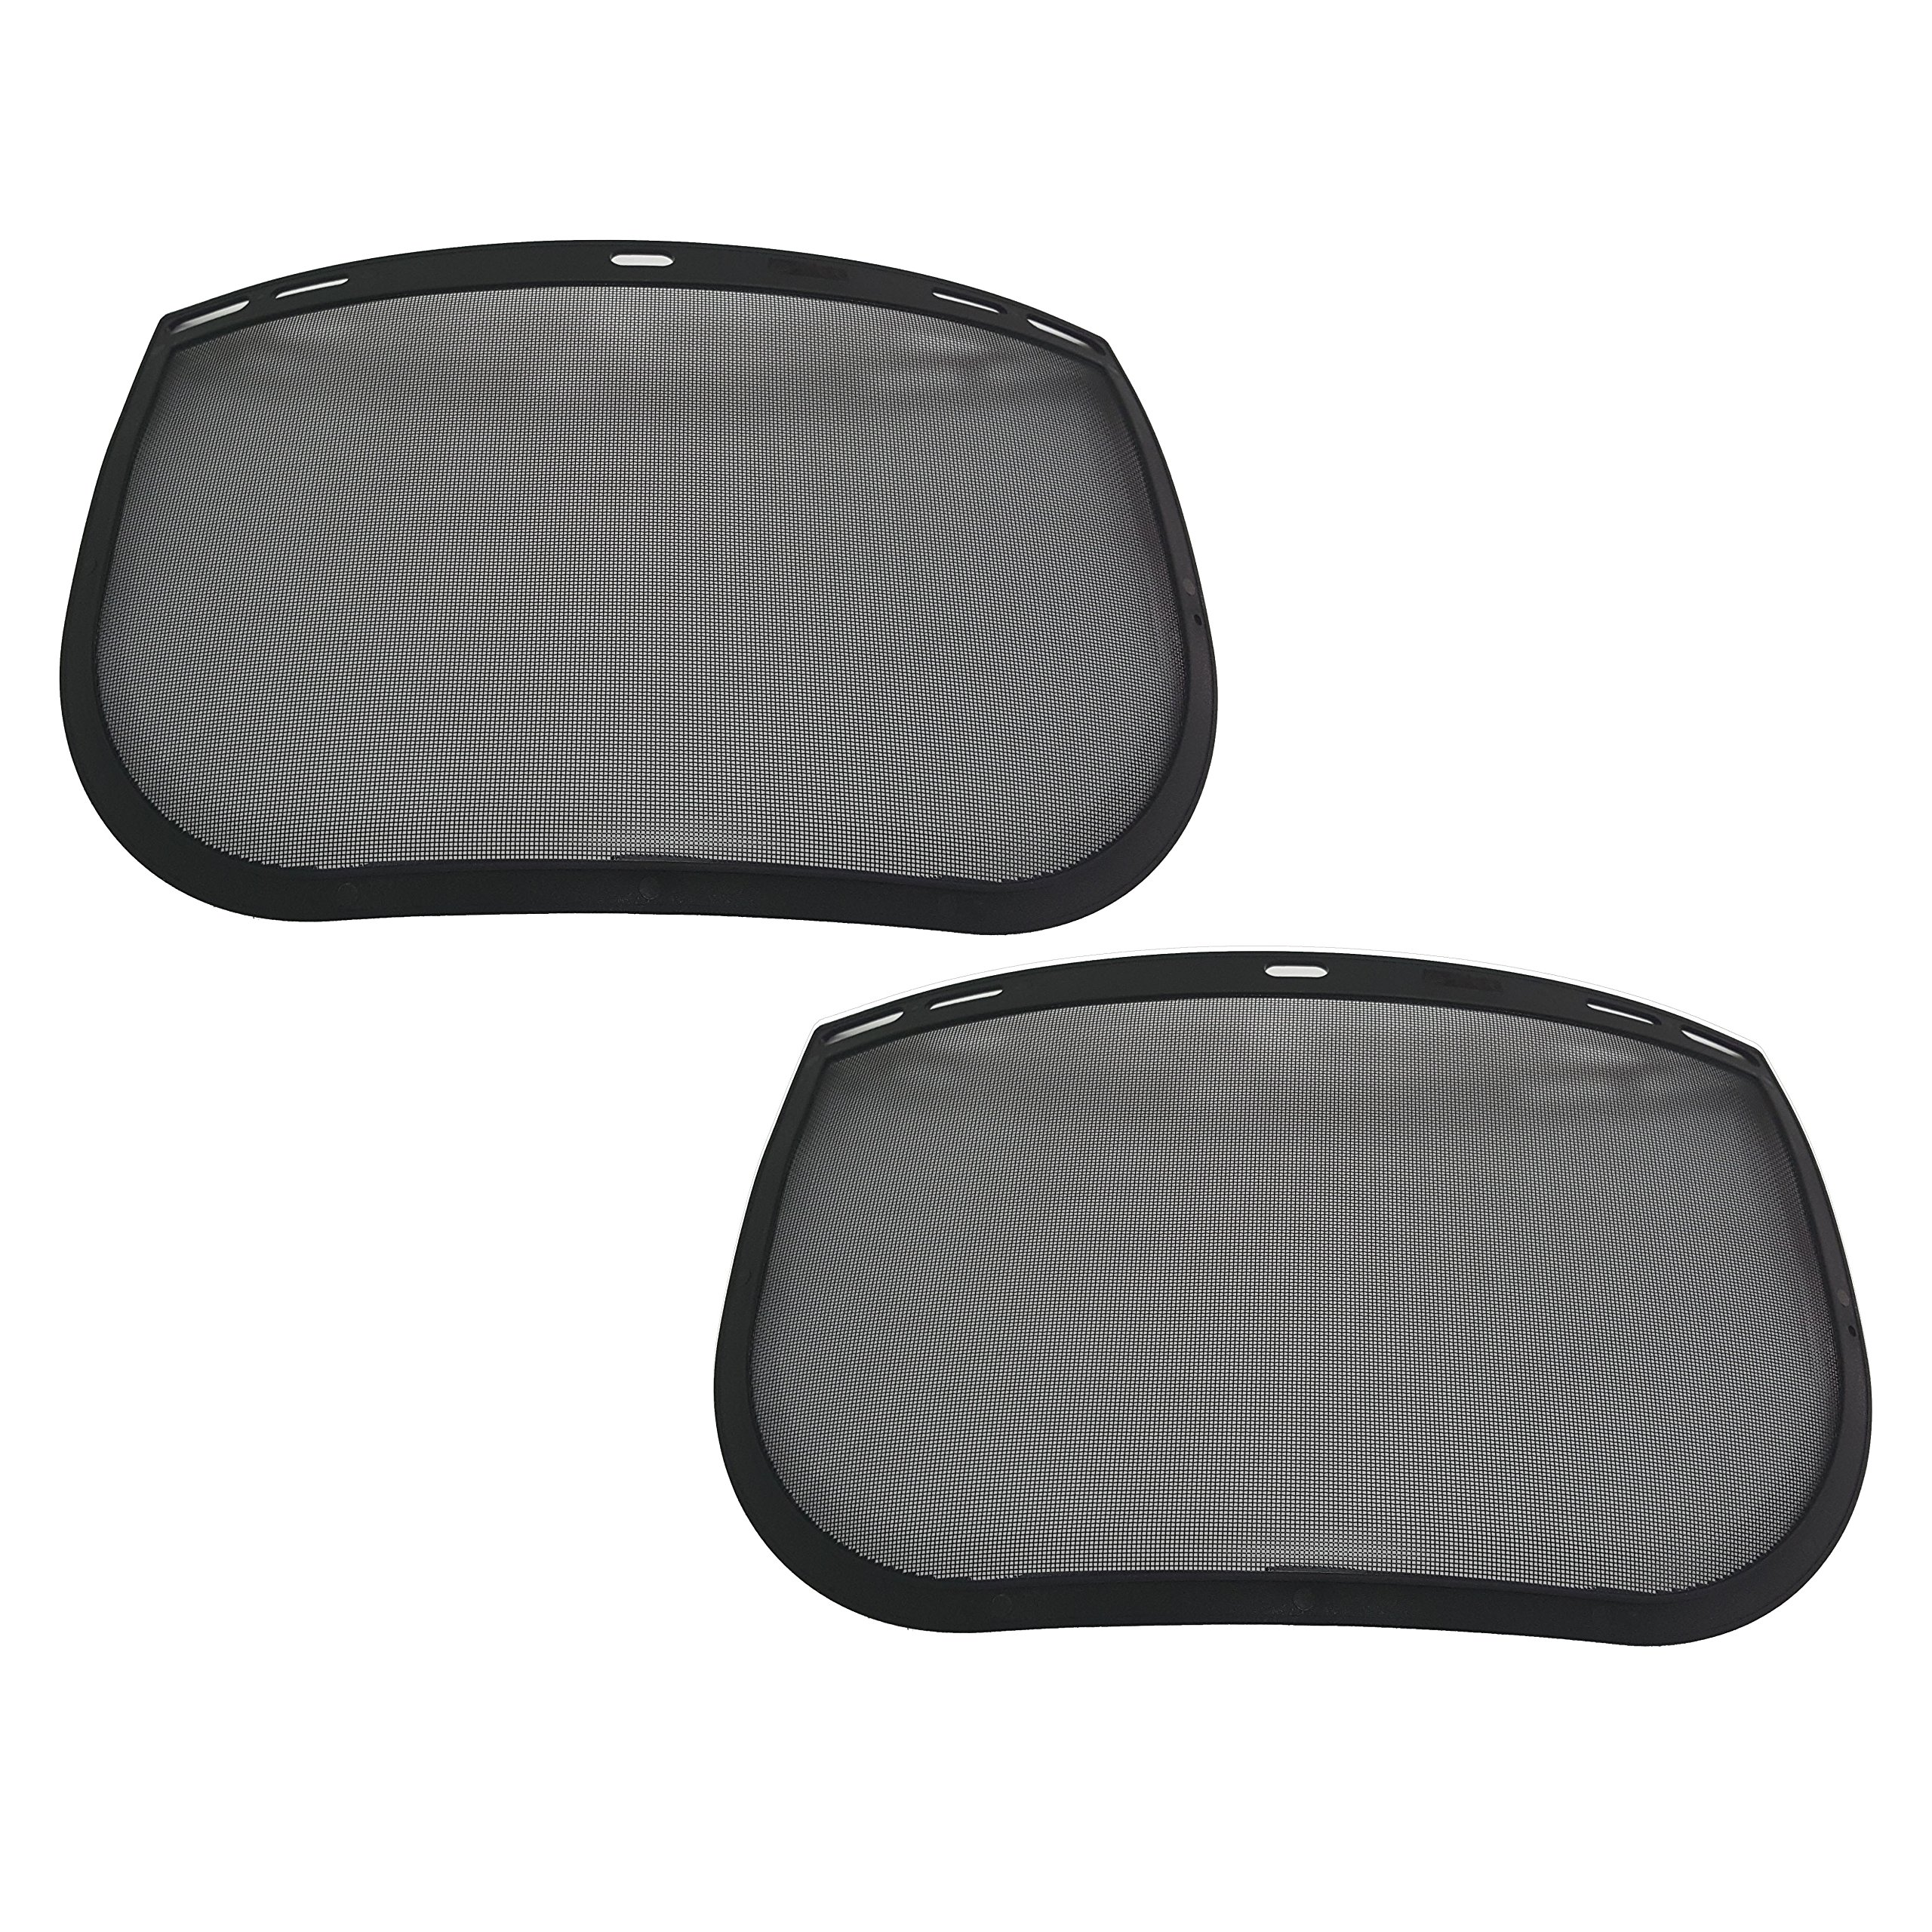 2 x Mesh Replacement Browguard Face Shield Jasper For B01MTE55D2, B01N27FUOV, B01N8R5UIM, B01MG7L836